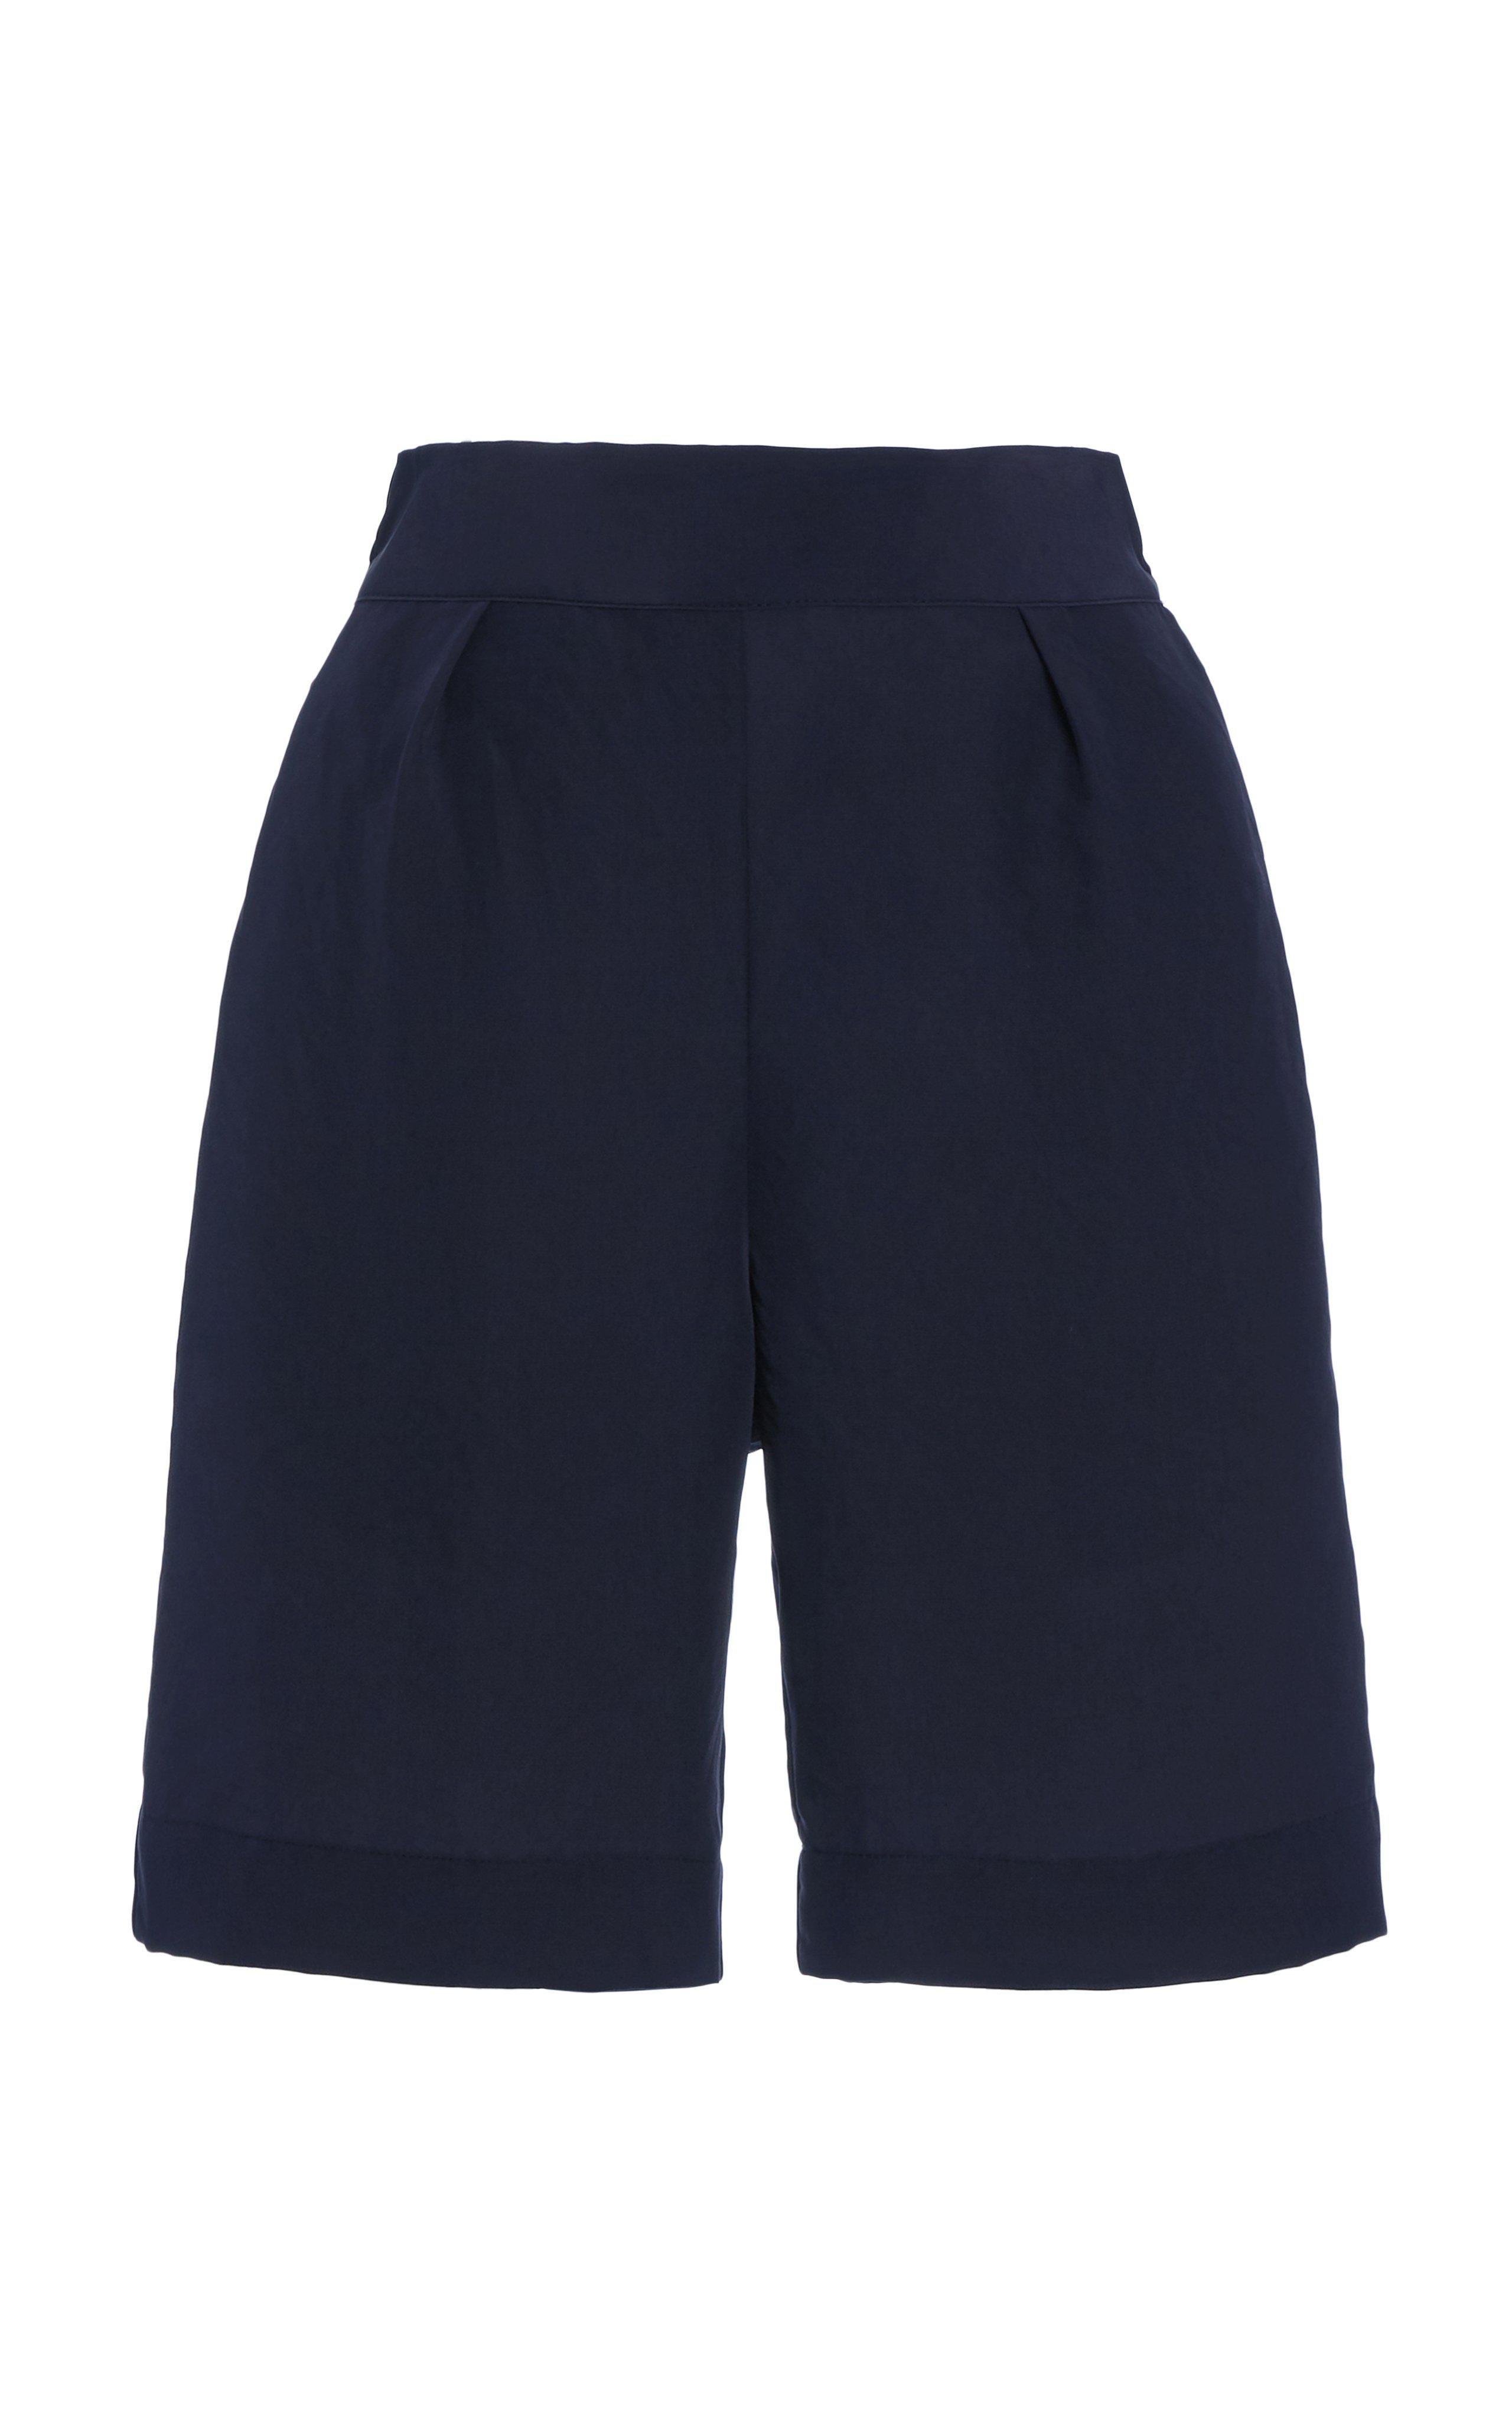 The High-Waisted Boardshort in Cupro